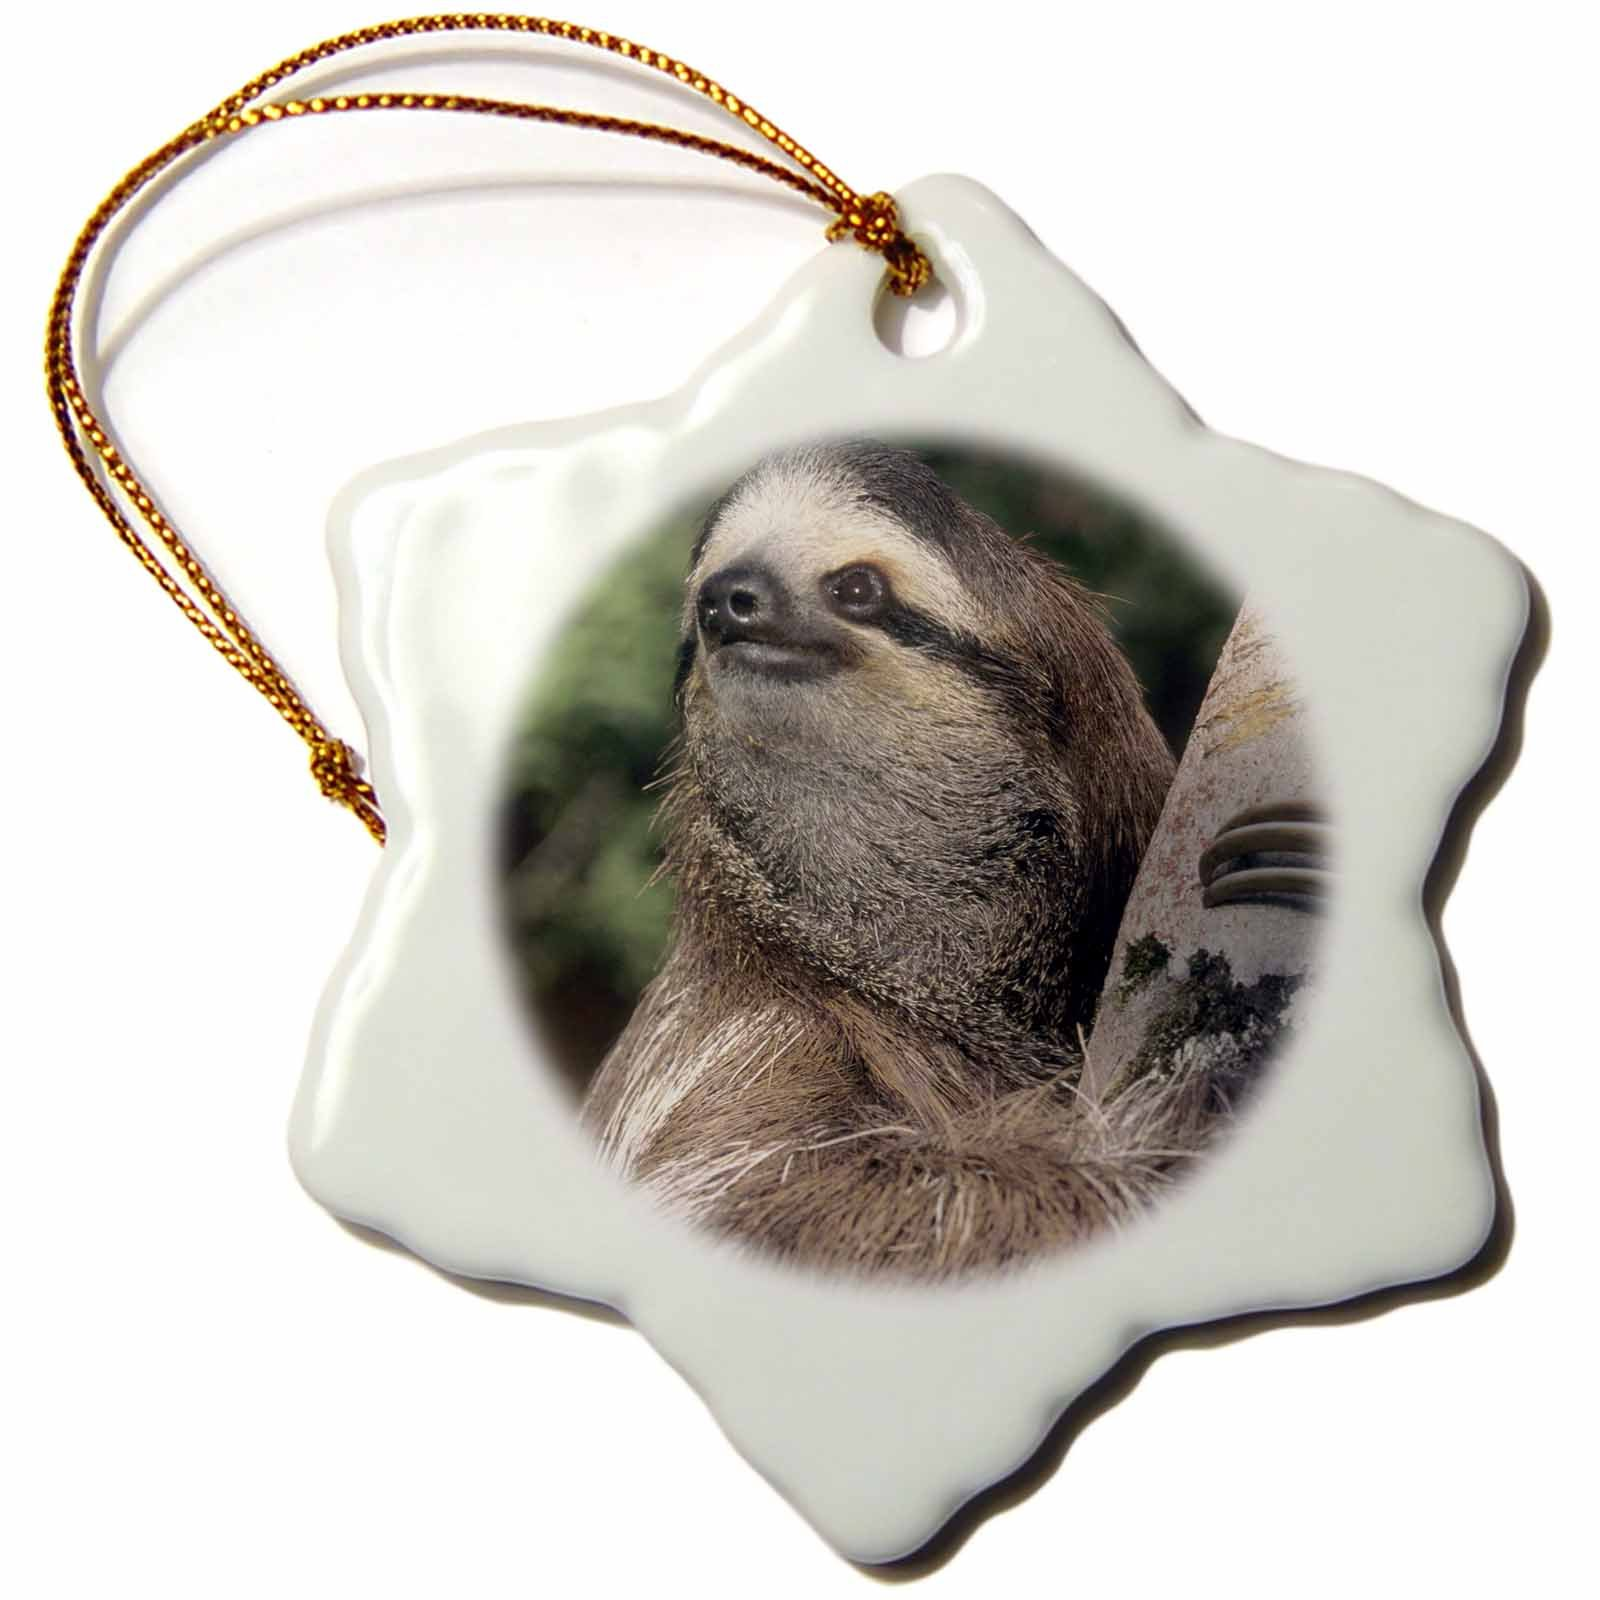 3dRose orn_87216_1 Three-toed Sloth Wildlife, Costa Rica SA22 KSC0126 Kevin Schafer Snowflake Porcelain Ornament, 3-Inch